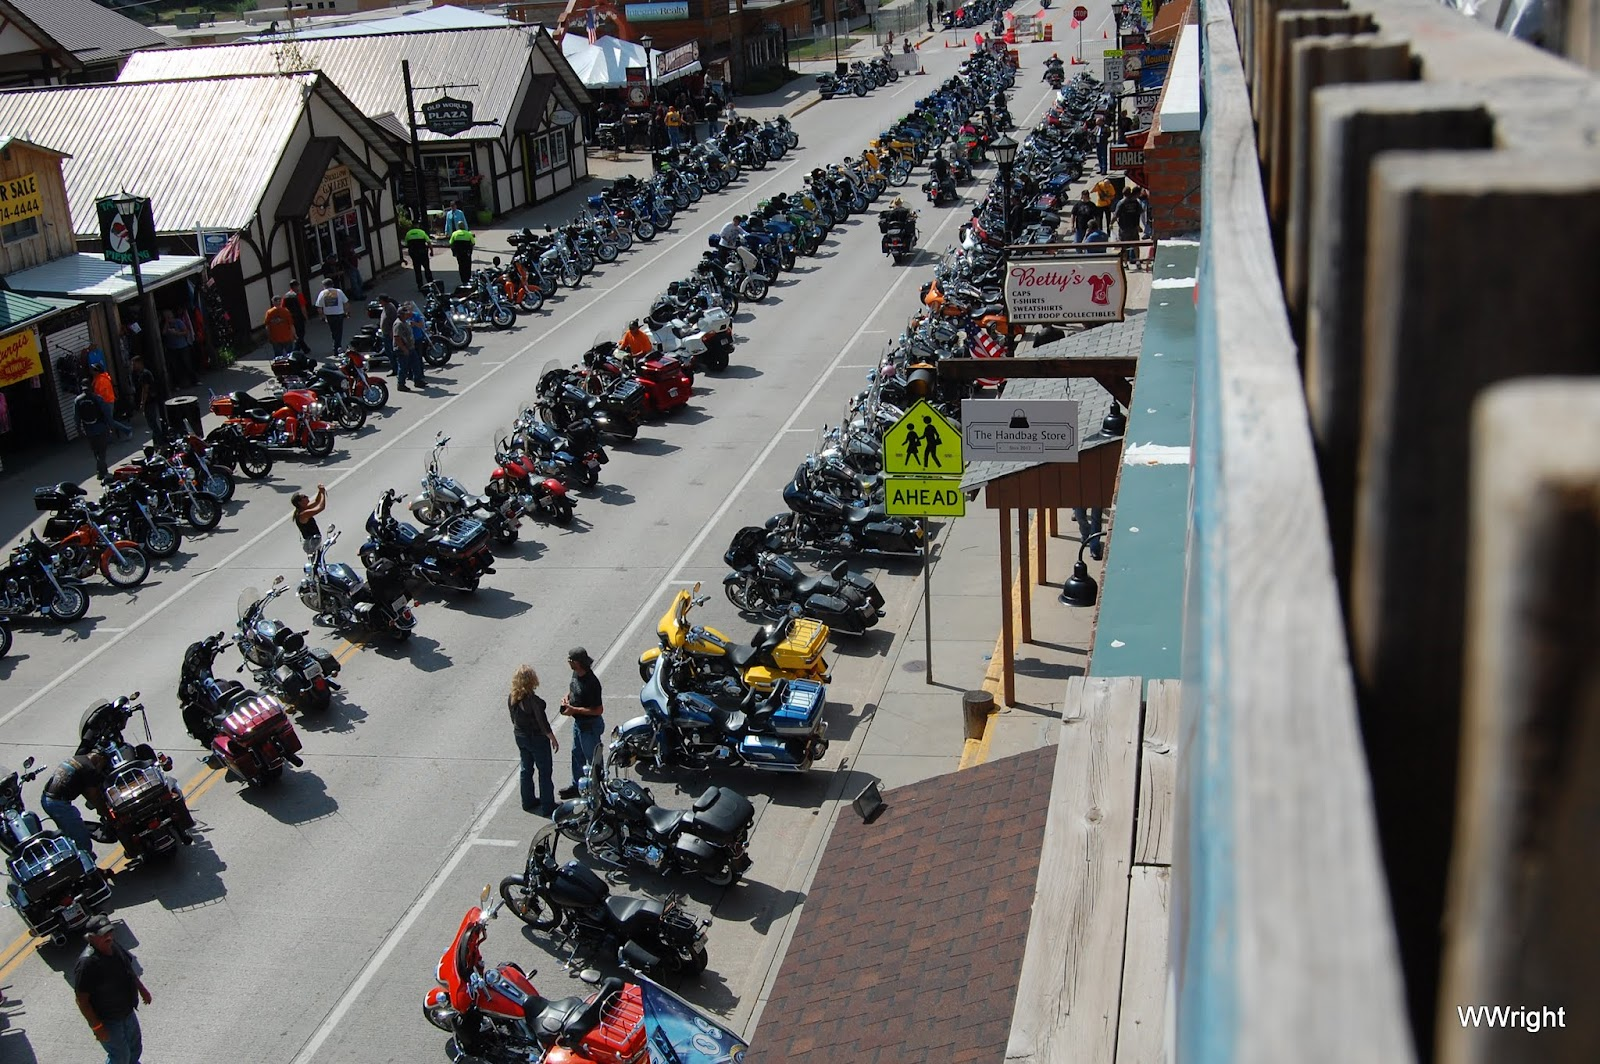 How Many Deaths At Sturgis 2015